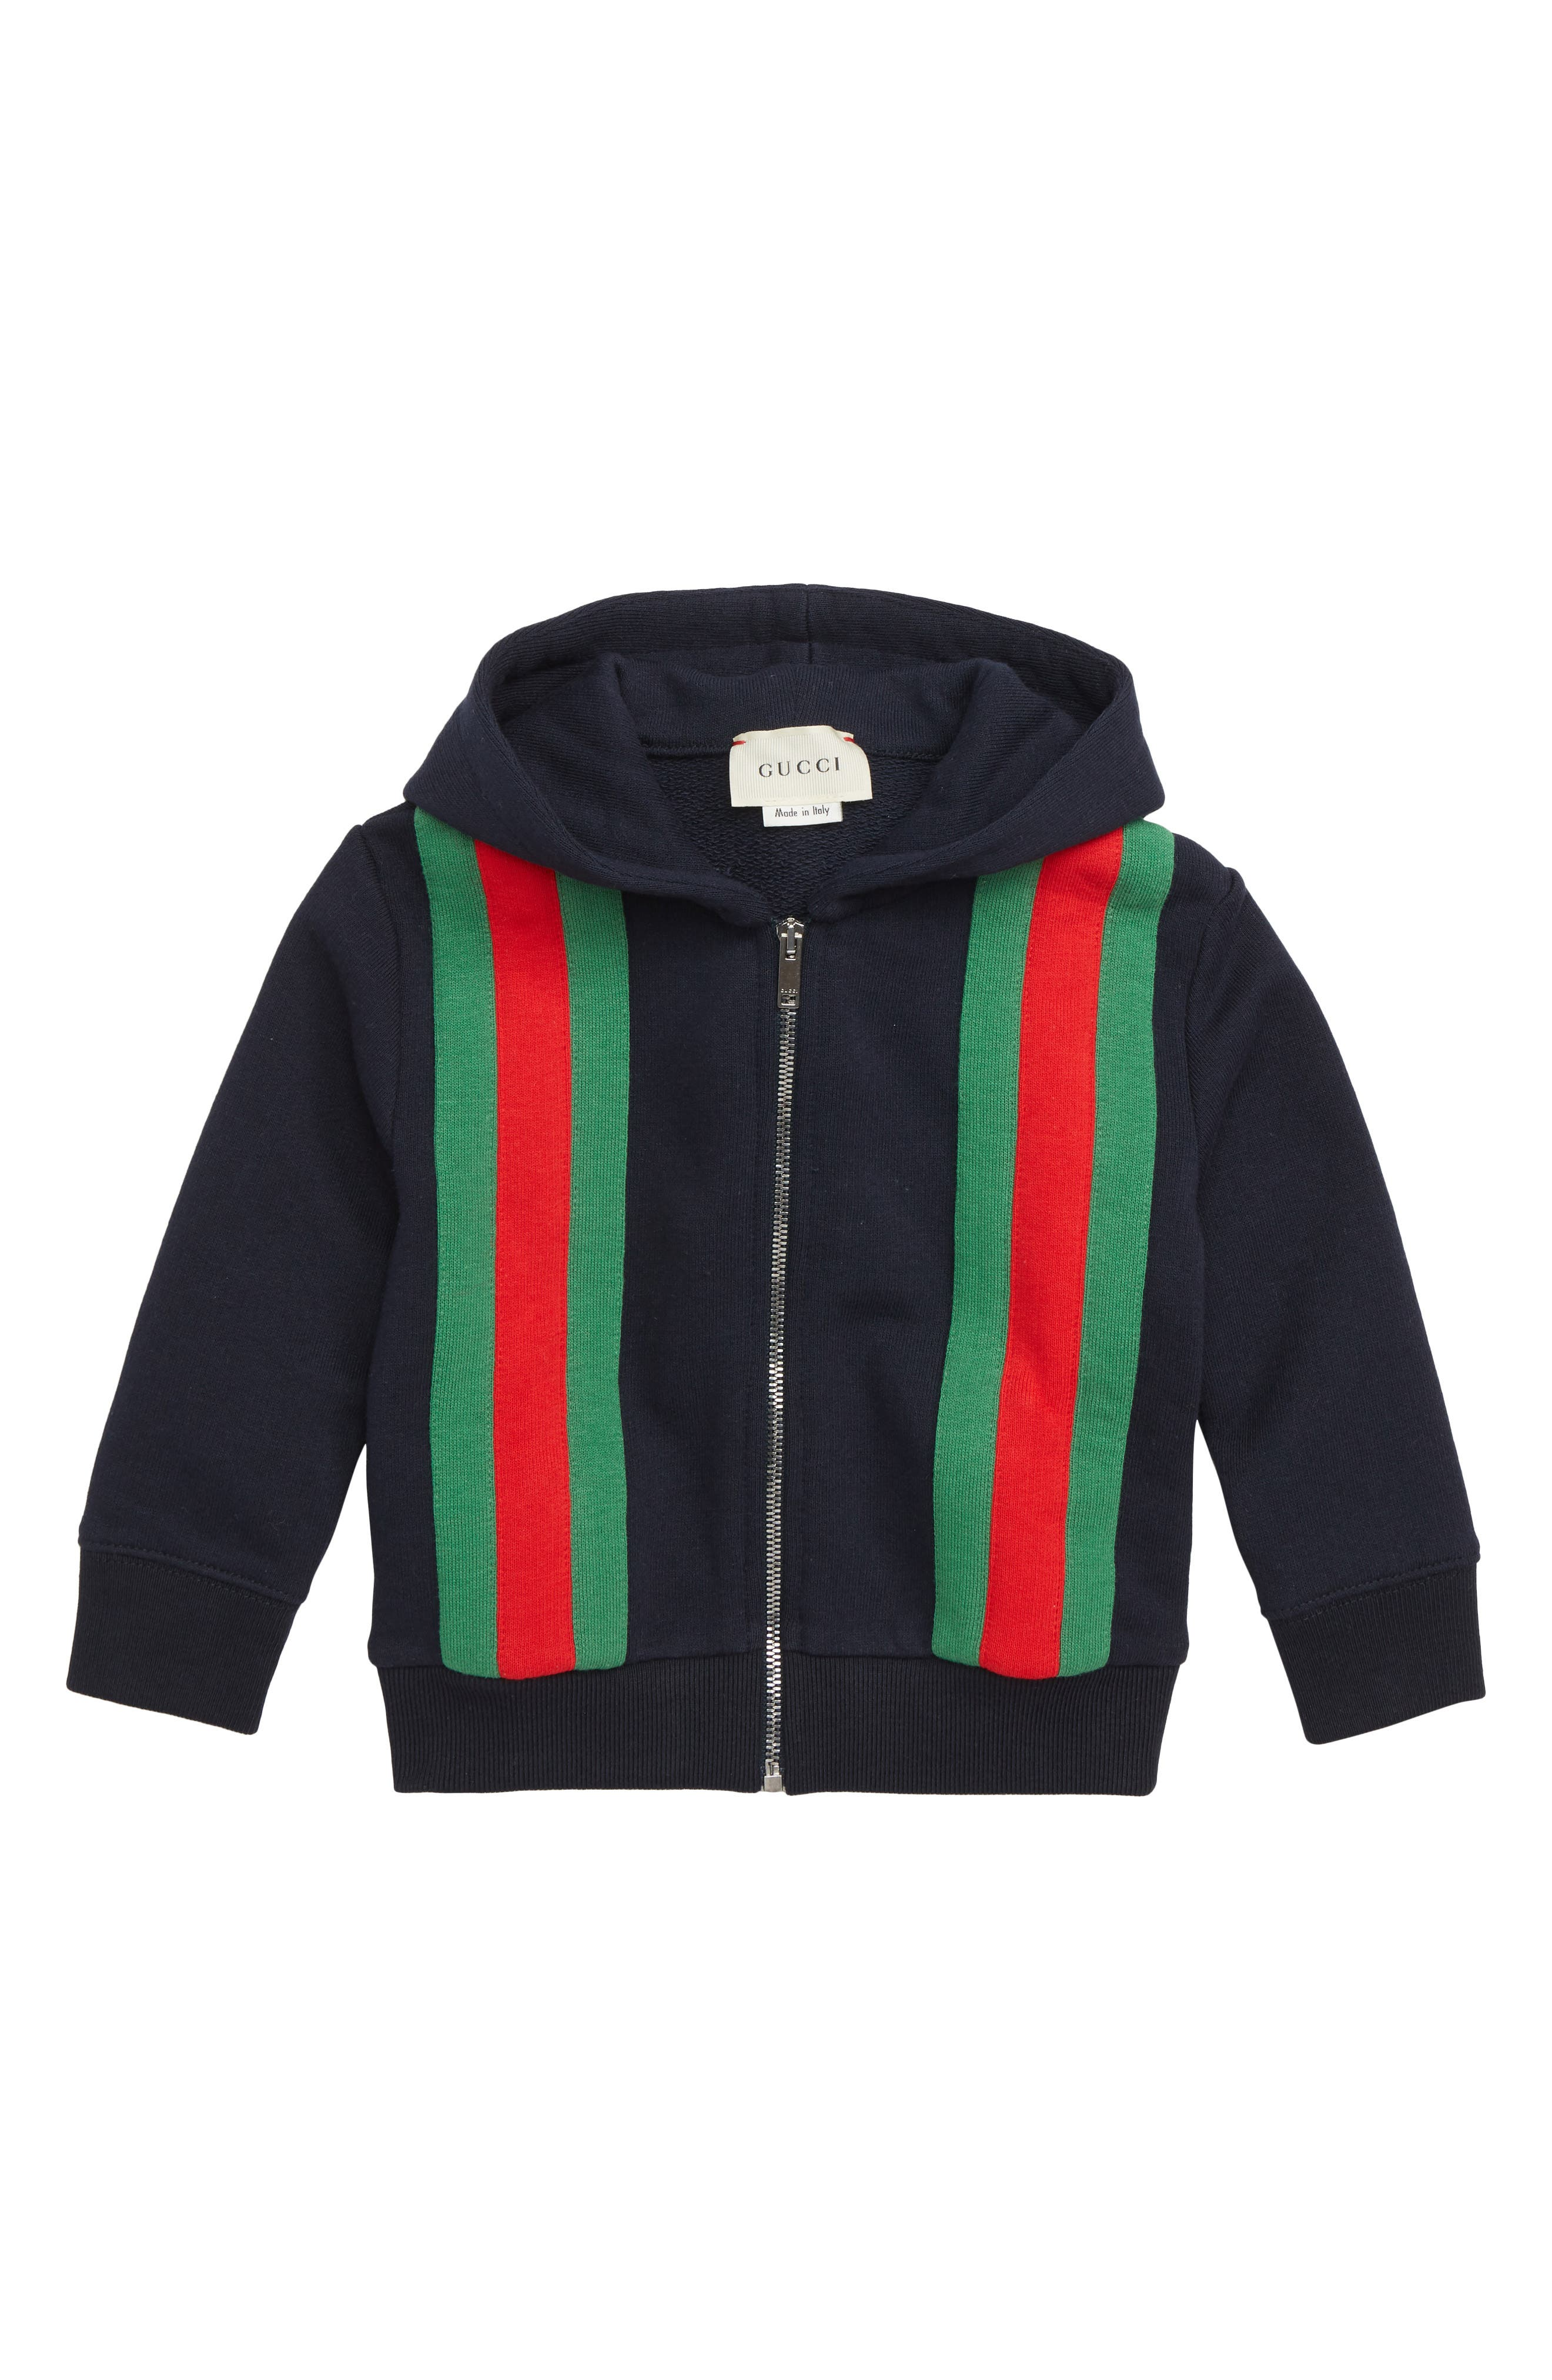 Stripe Zip Hoodie,                             Main thumbnail 1, color,                             URBAN BLUE/ GREEN/ RED